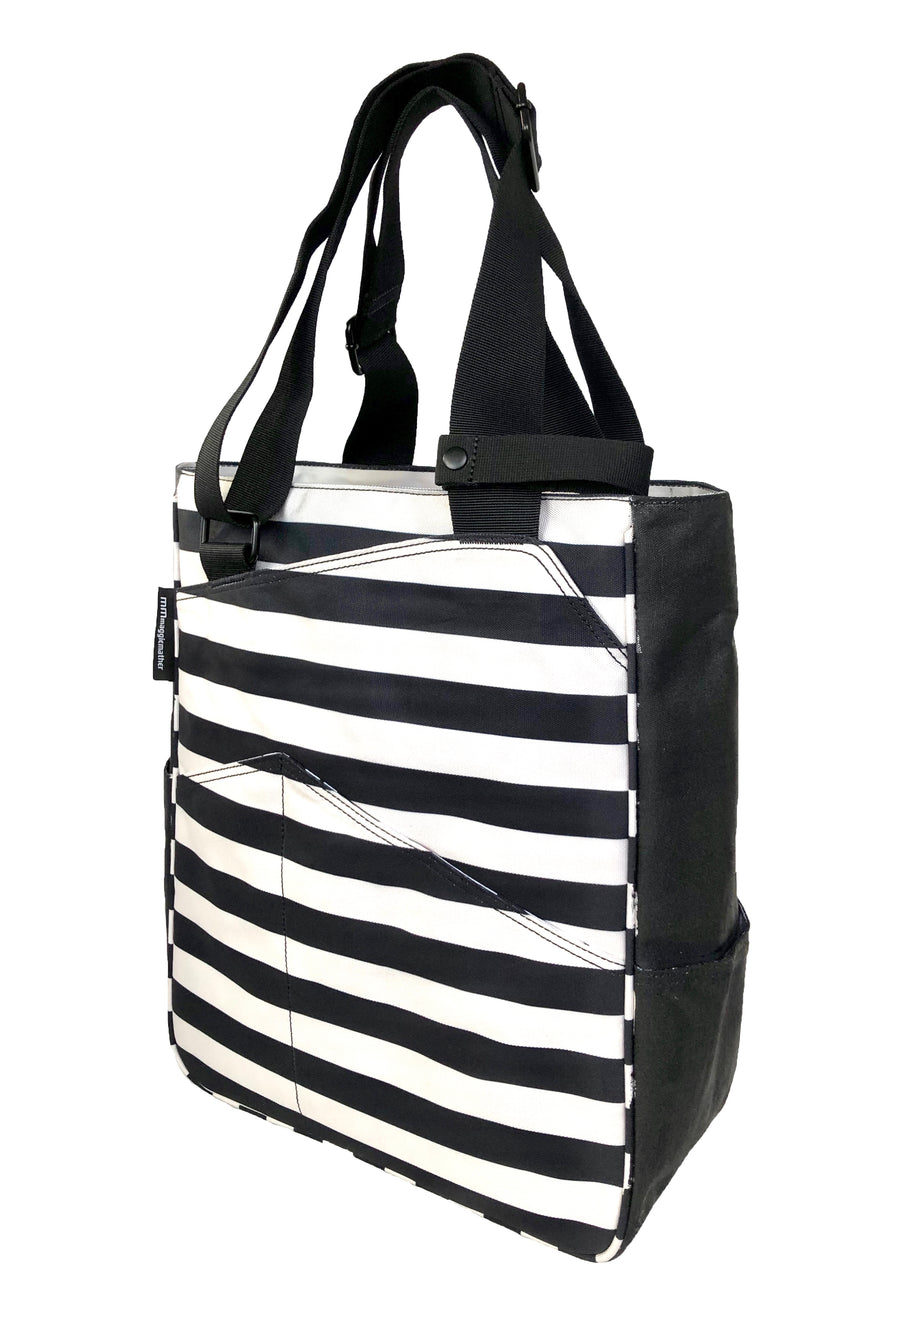 Tennis Tote in Stripes